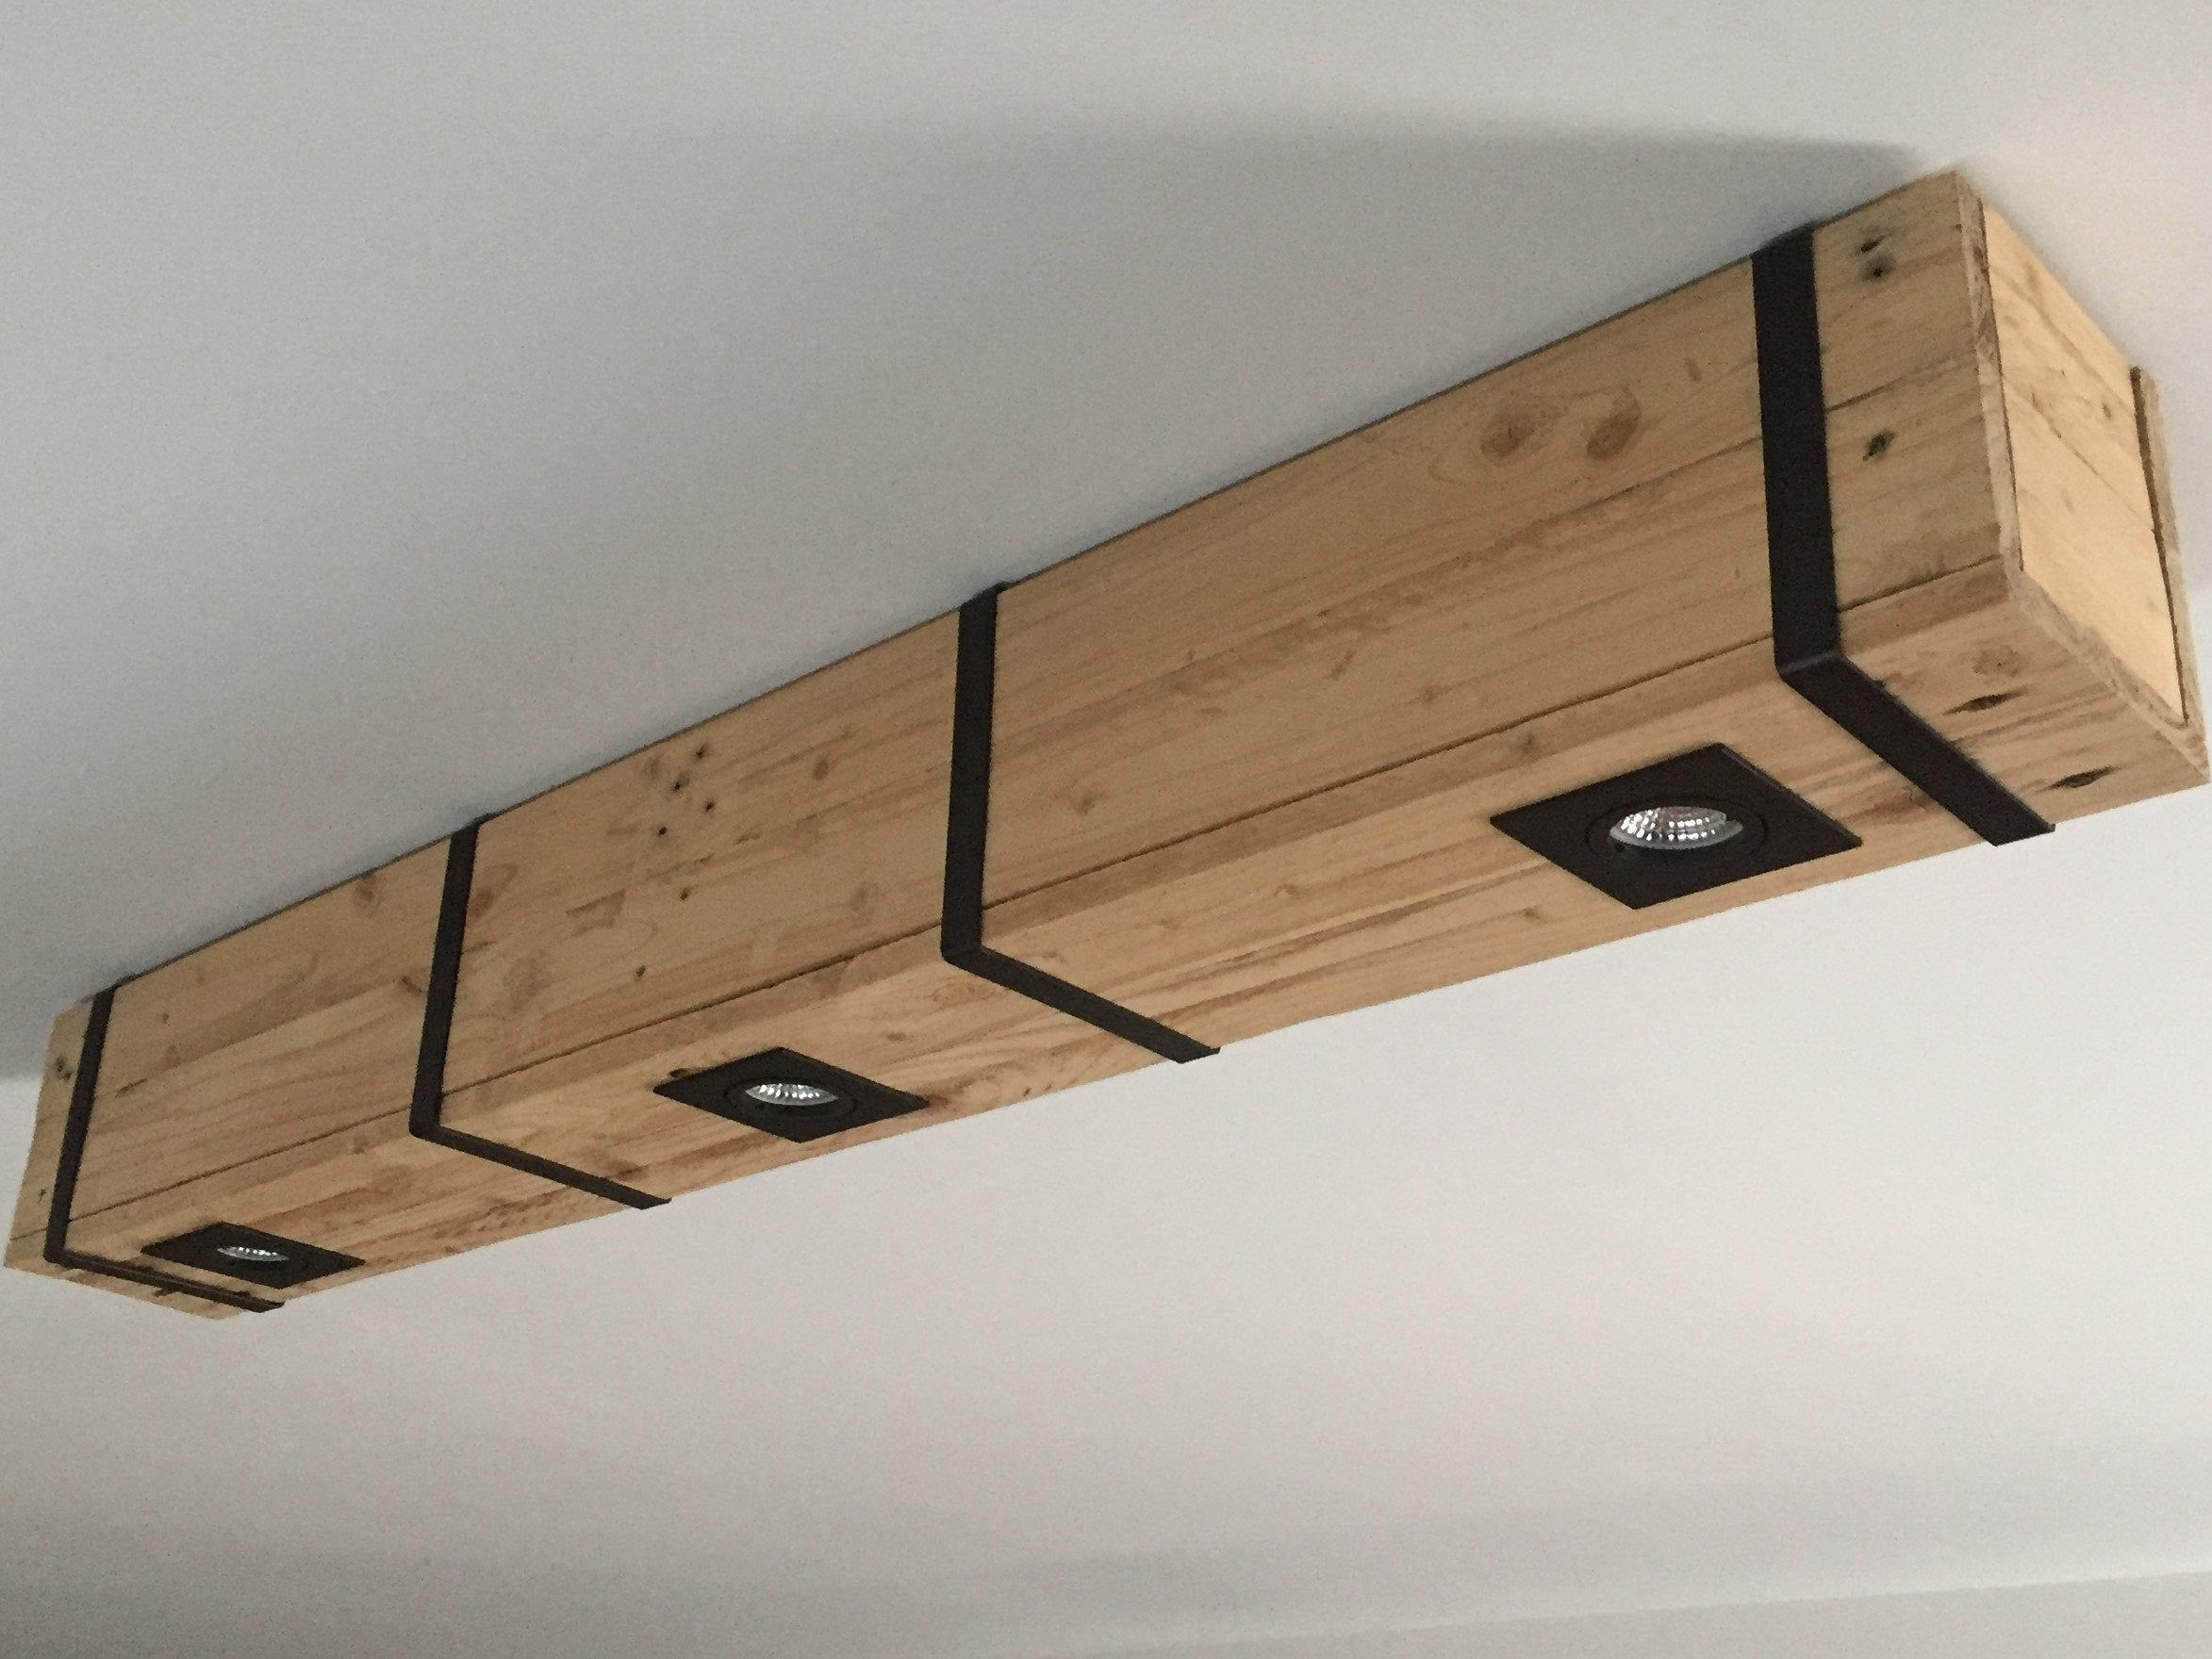 Ceiling Lamp In Recycled Pallet Wood Metal Strapping 3 Leds Spotlights Recycled Pallet Ceiling Lamp Wood Pallets